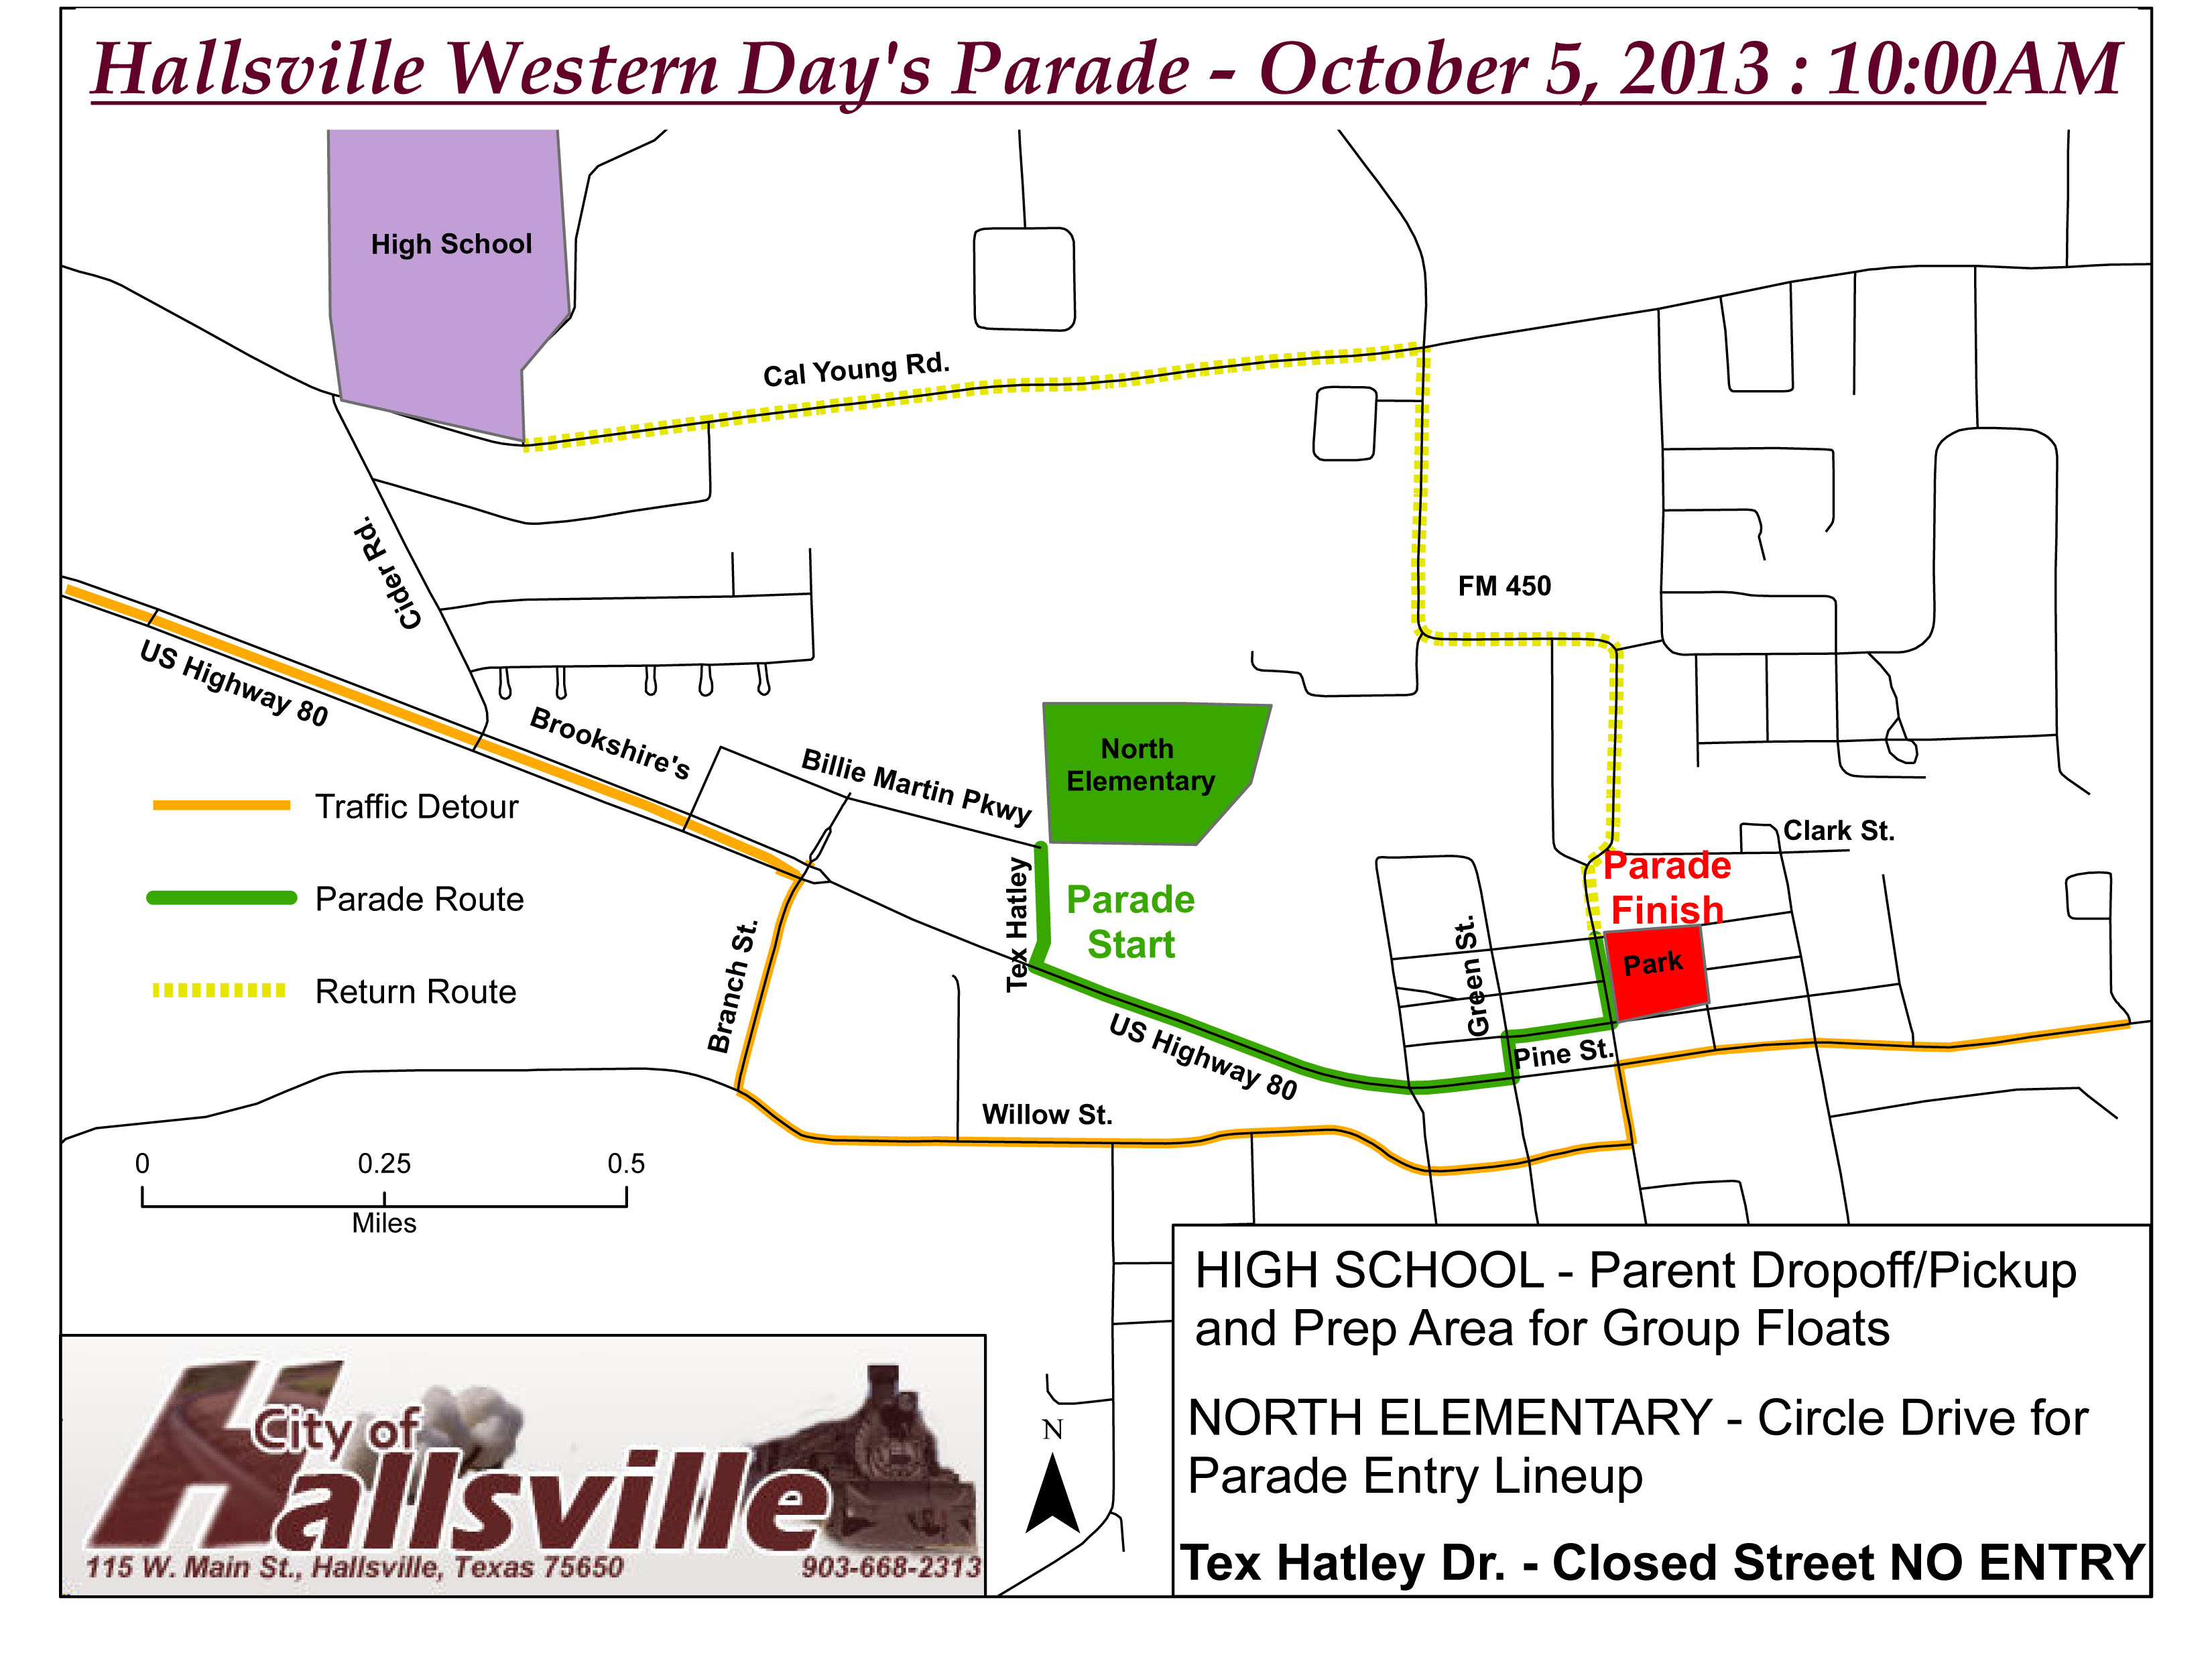 Hallsville Western Days Parade Map 2013